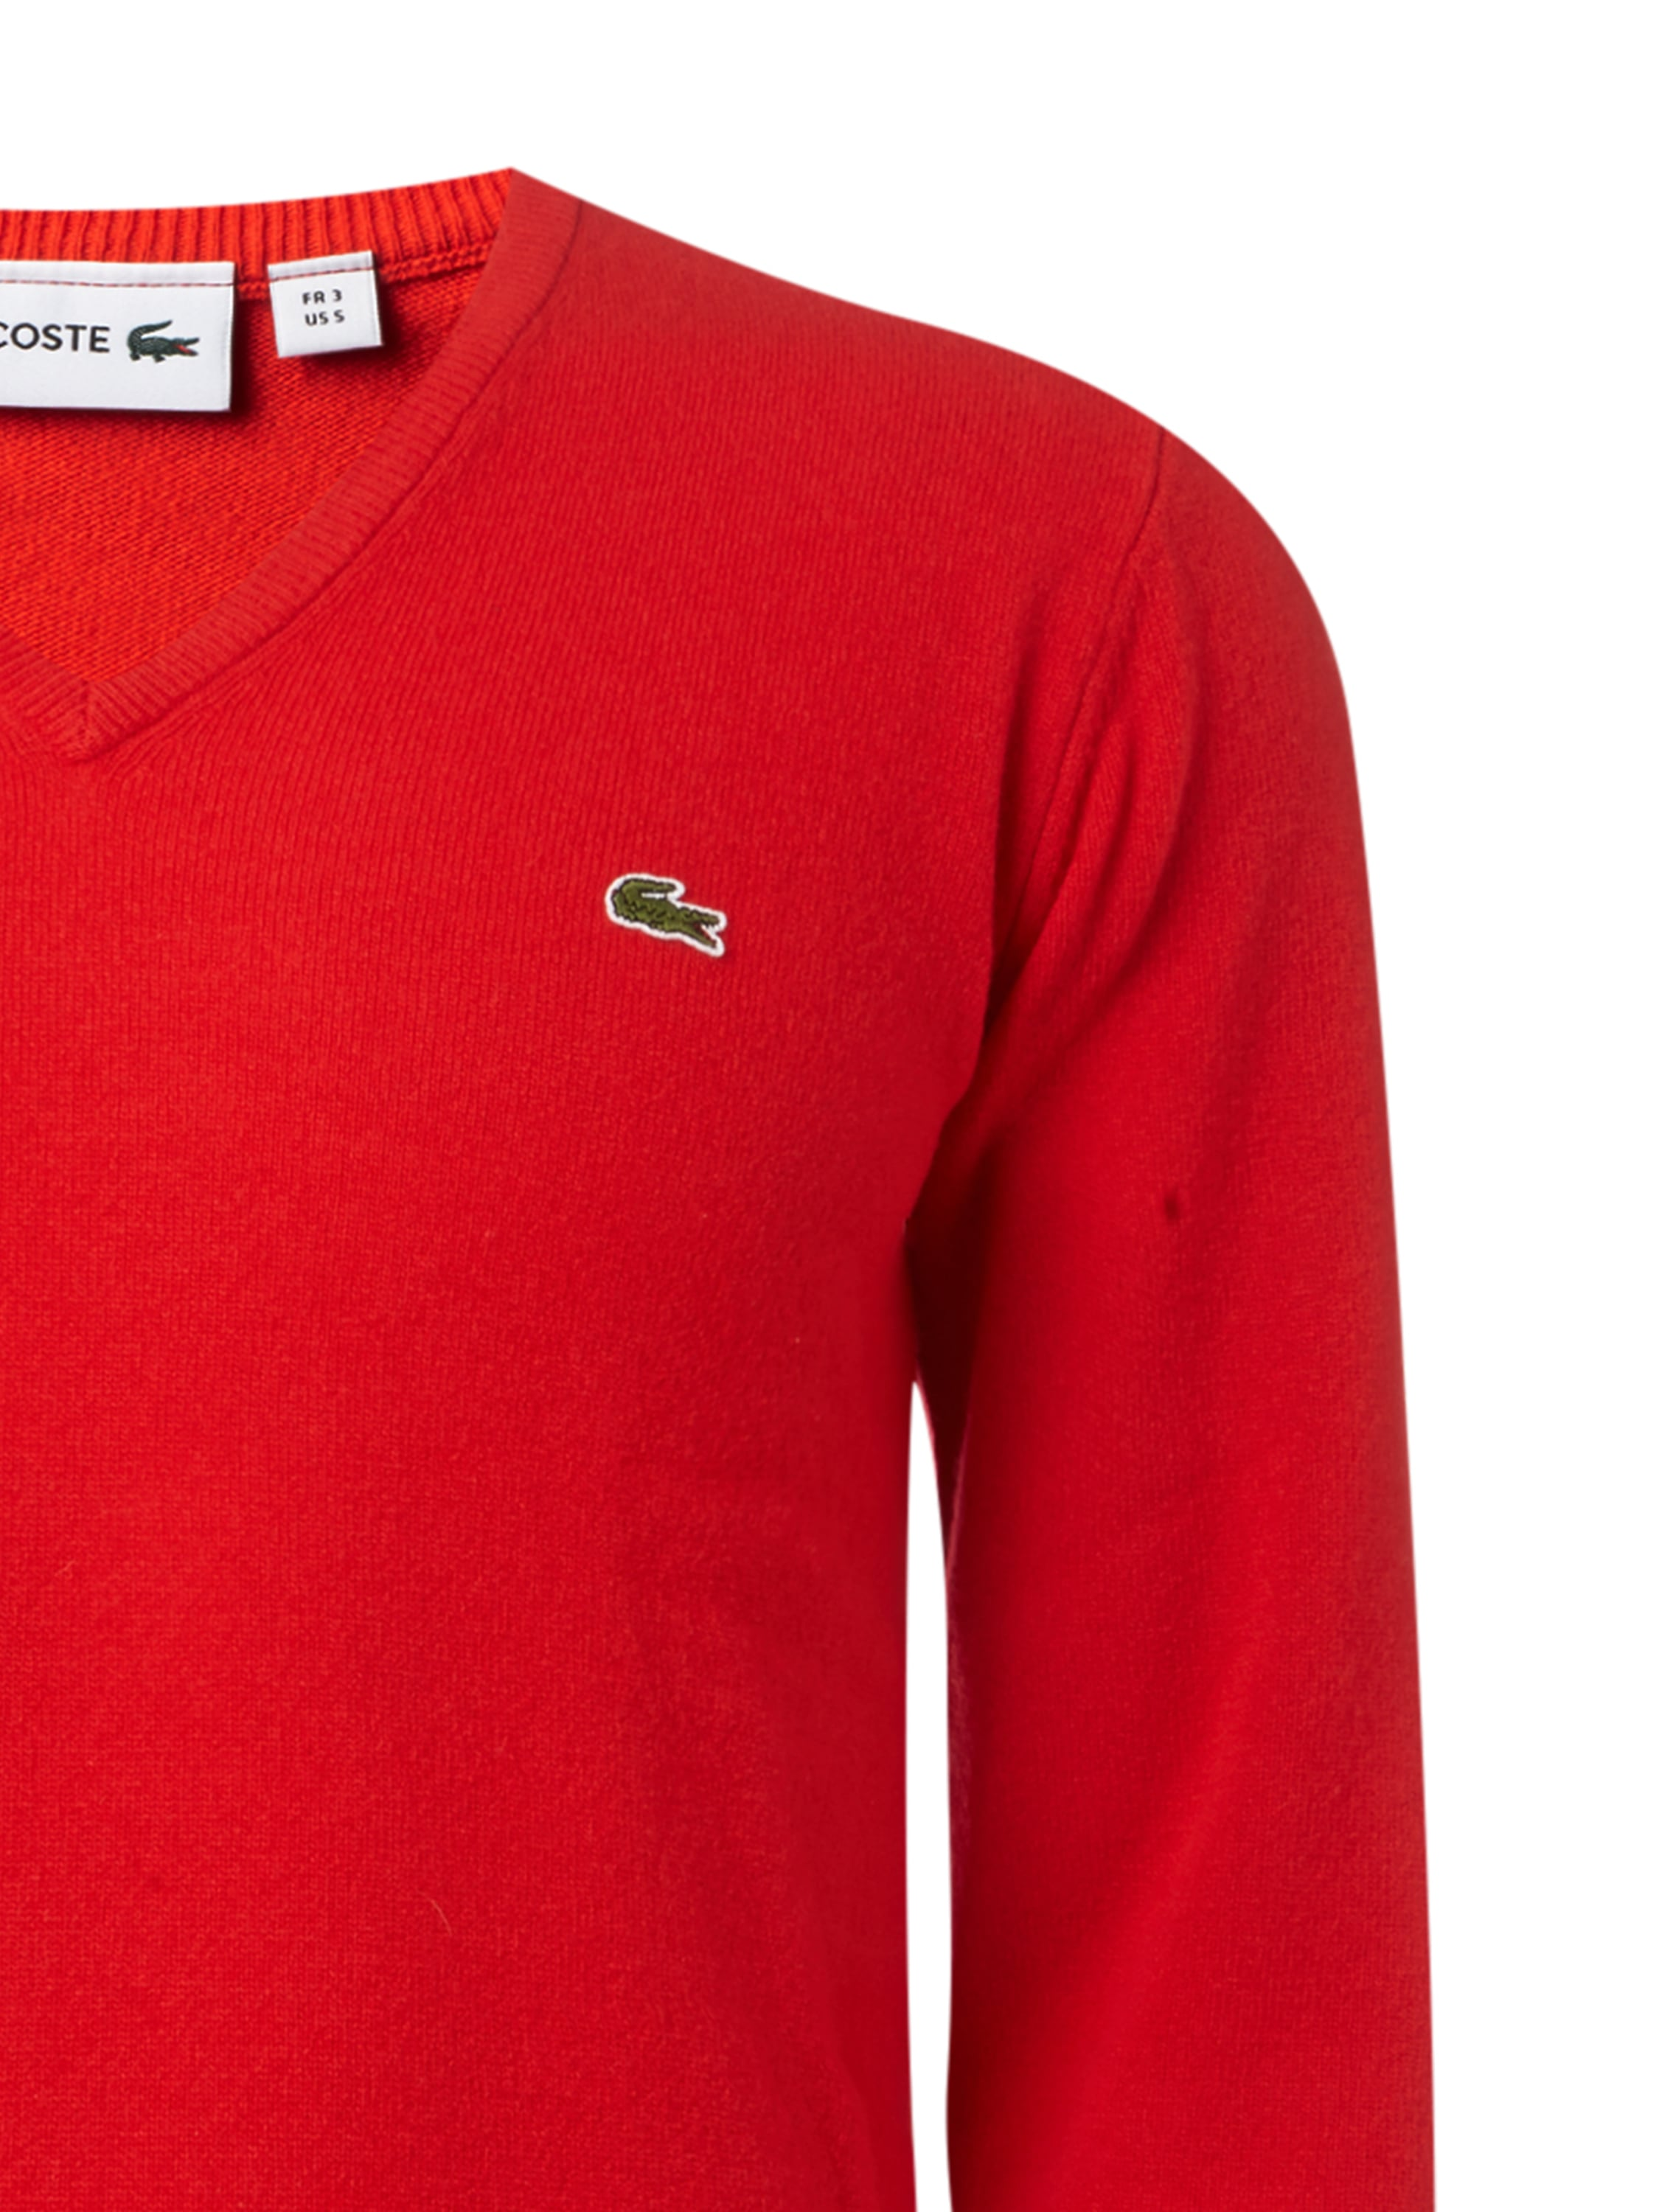 lacoste pullover aus schurwolle mit v ausschnitt in rot online kaufen 9531302 p c online shop. Black Bedroom Furniture Sets. Home Design Ideas